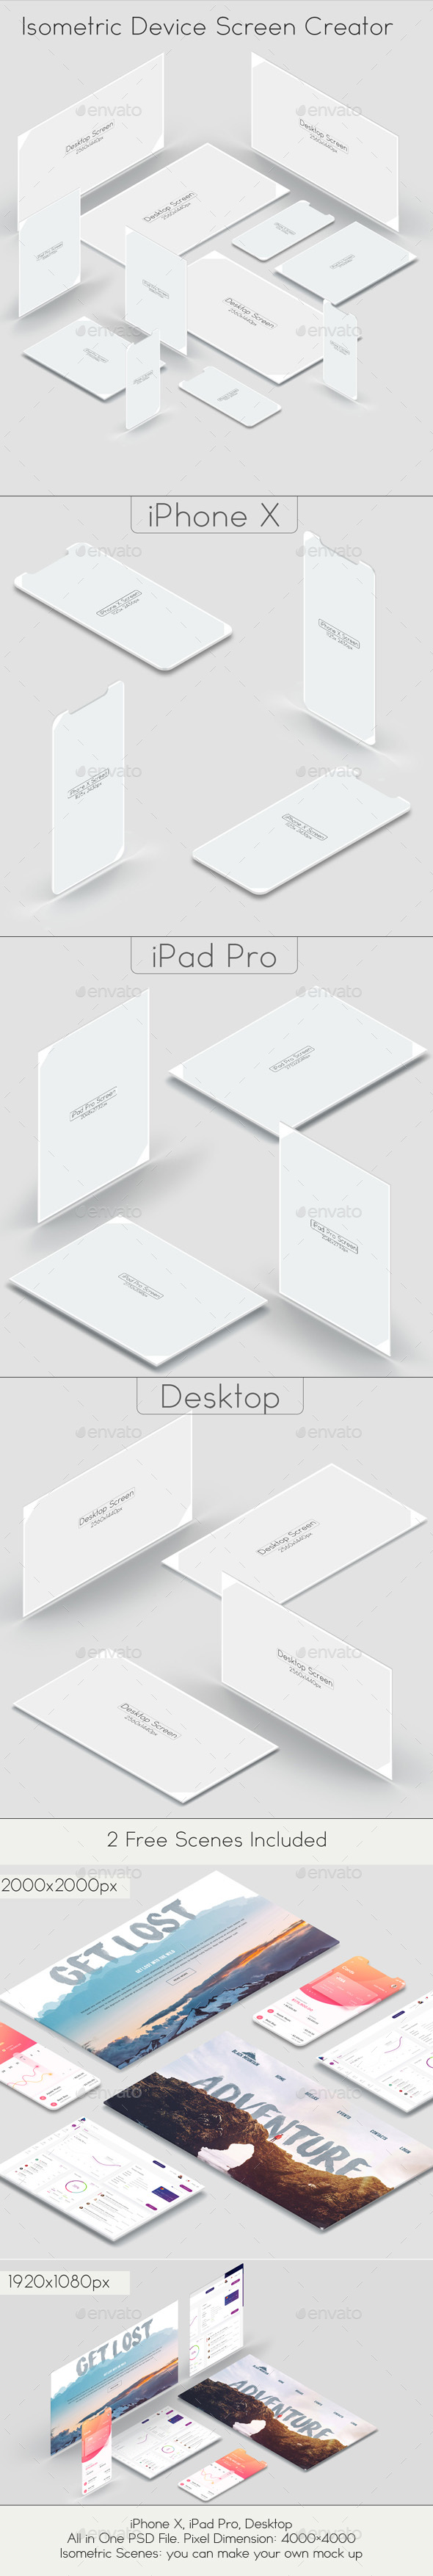 Isometric Device Screen Creator - Displays Product Mock-Ups